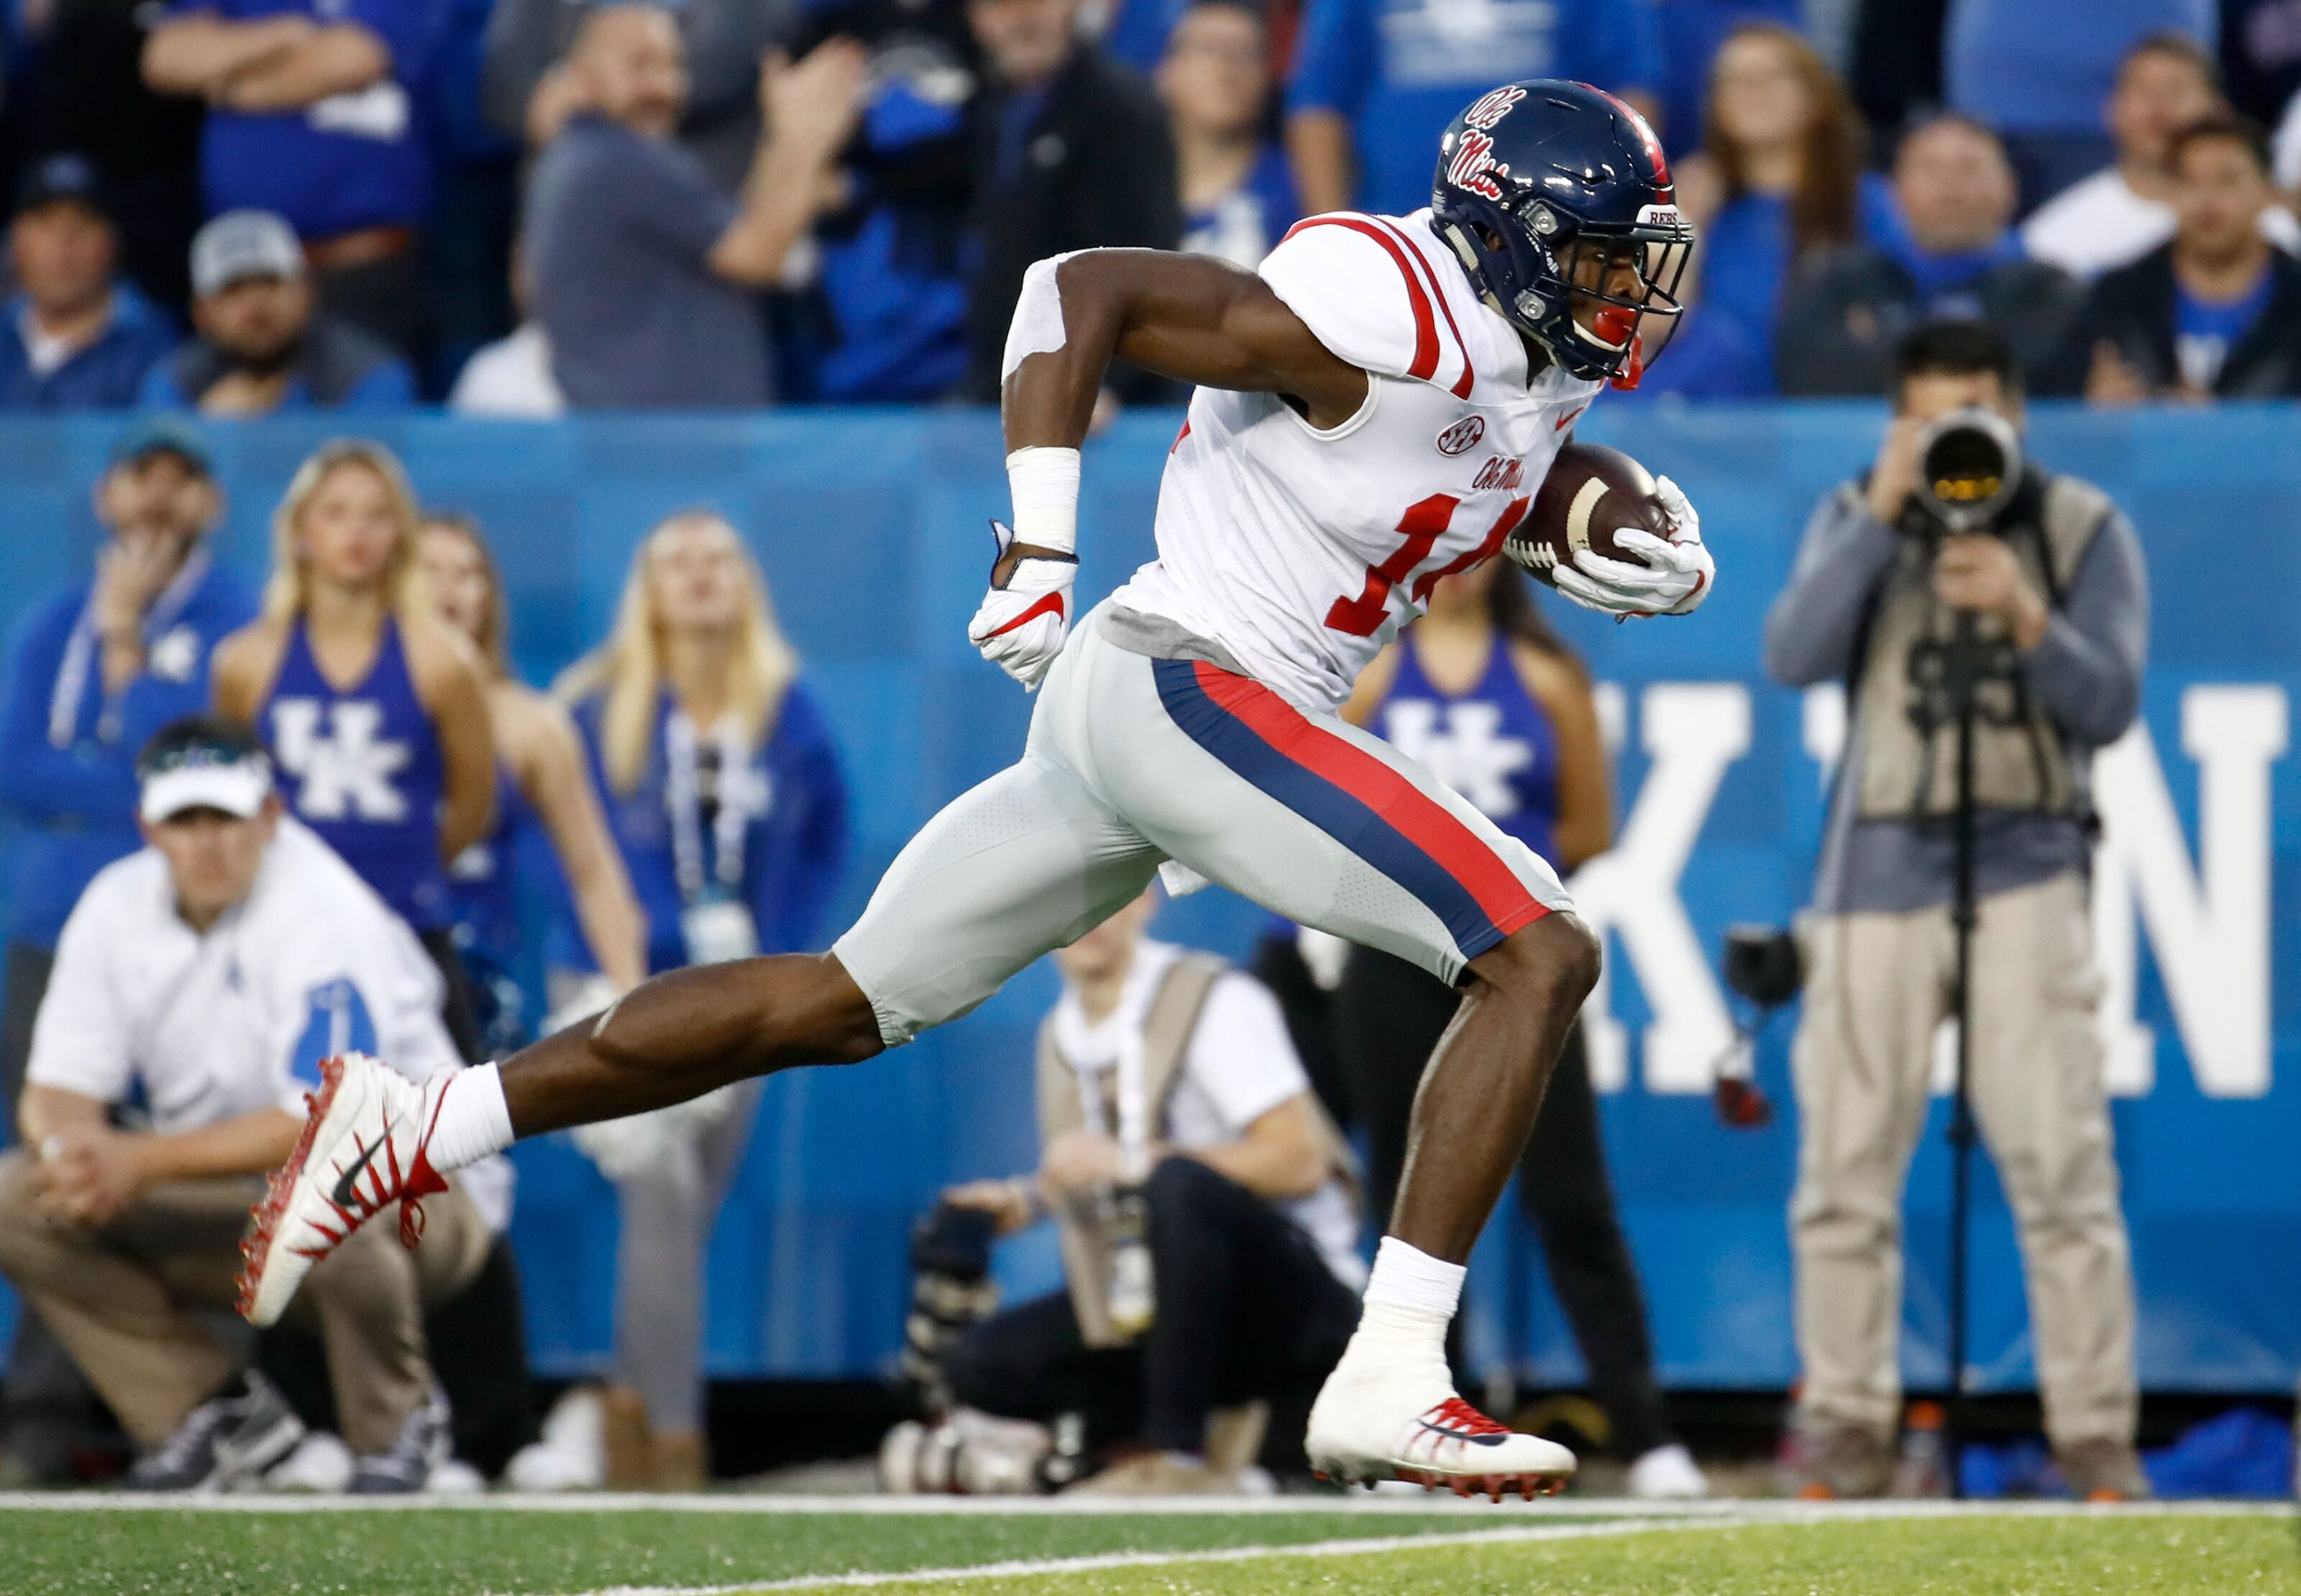 Cleveland Browns: Is D.K. Metcalf in play at 17th overall?